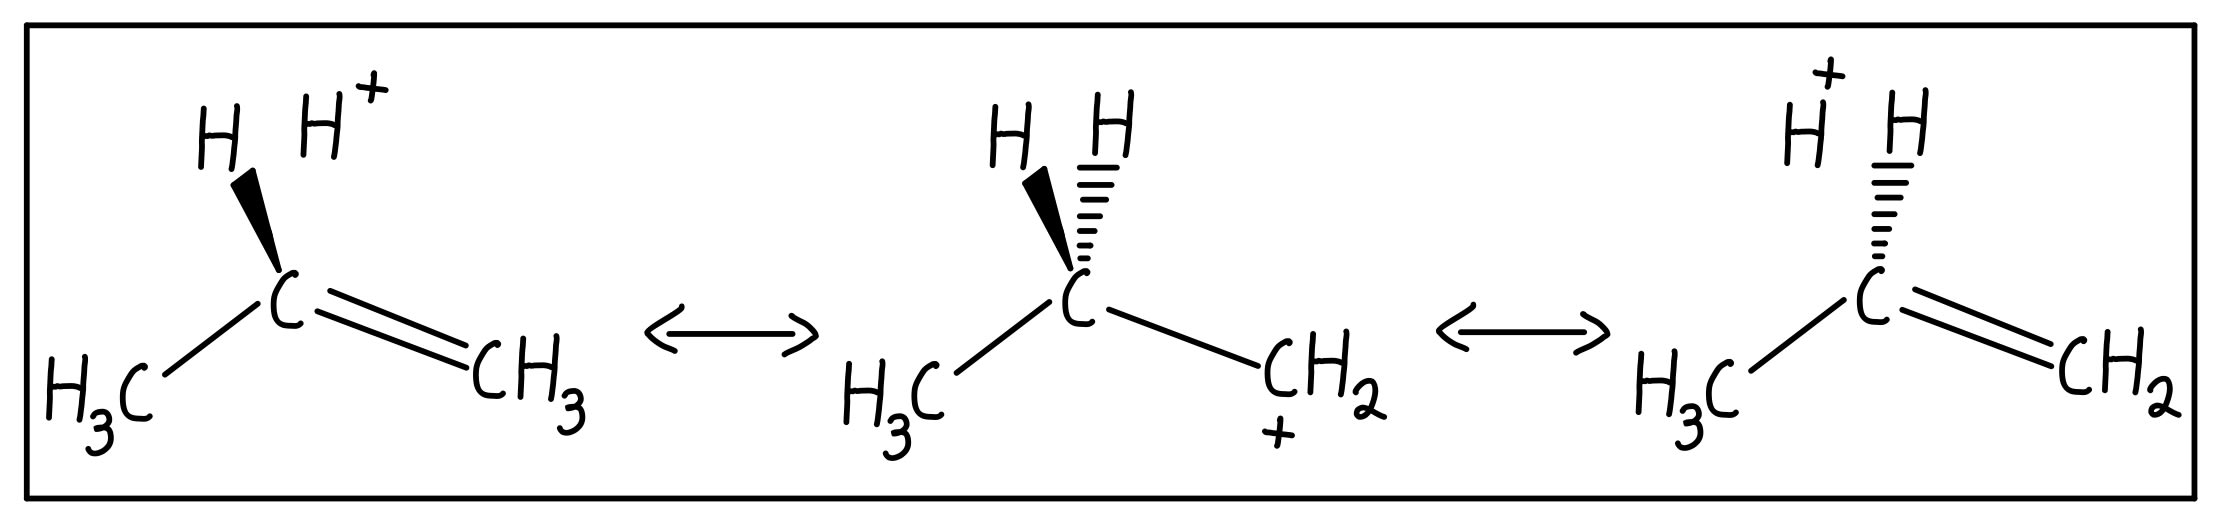 Hyperconjugation resonance structures